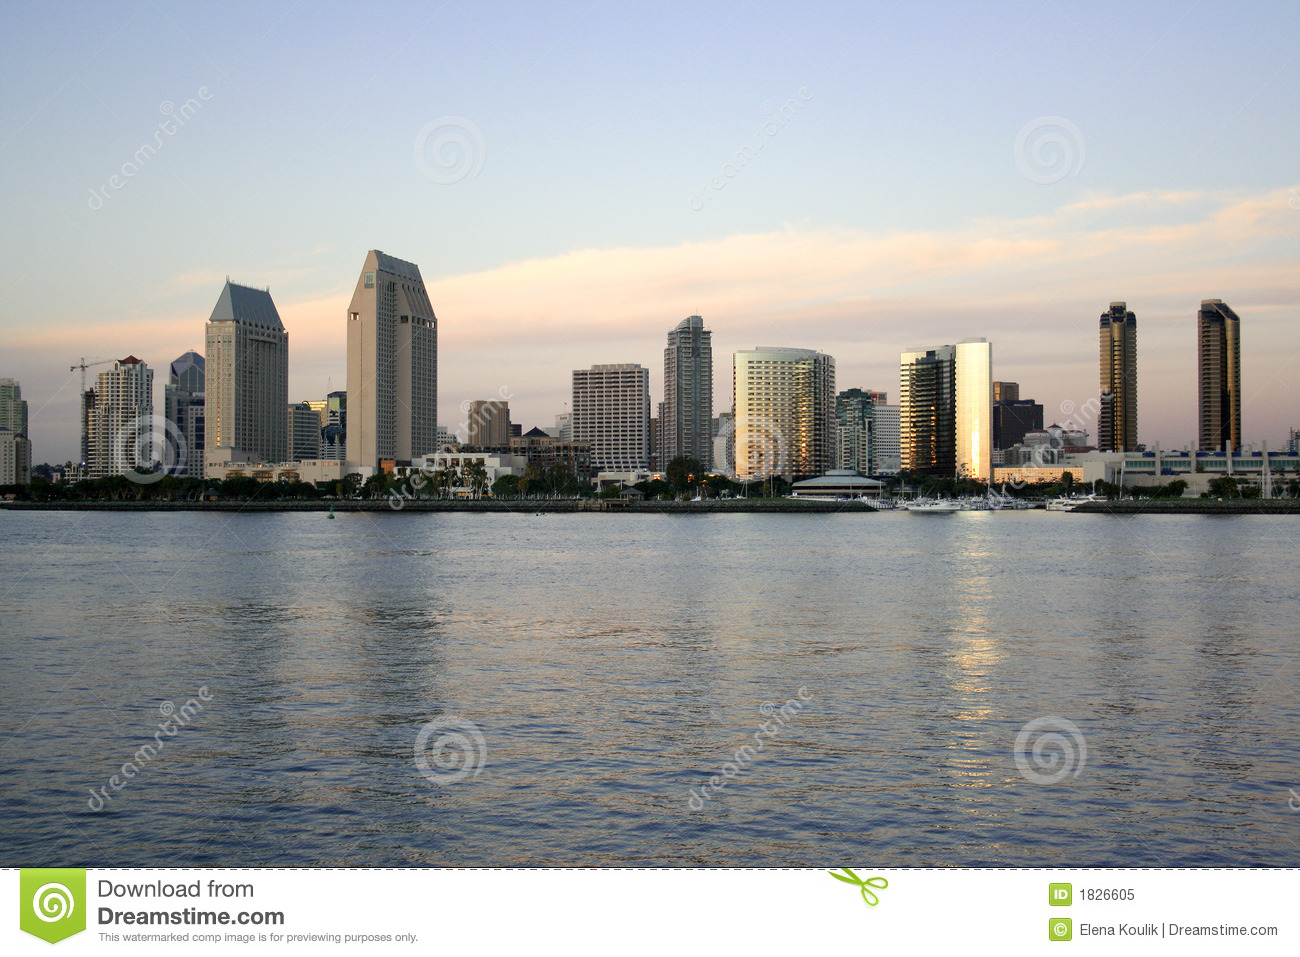 beach in downtown san diego ca stock image image of evening california 1826605. Black Bedroom Furniture Sets. Home Design Ideas